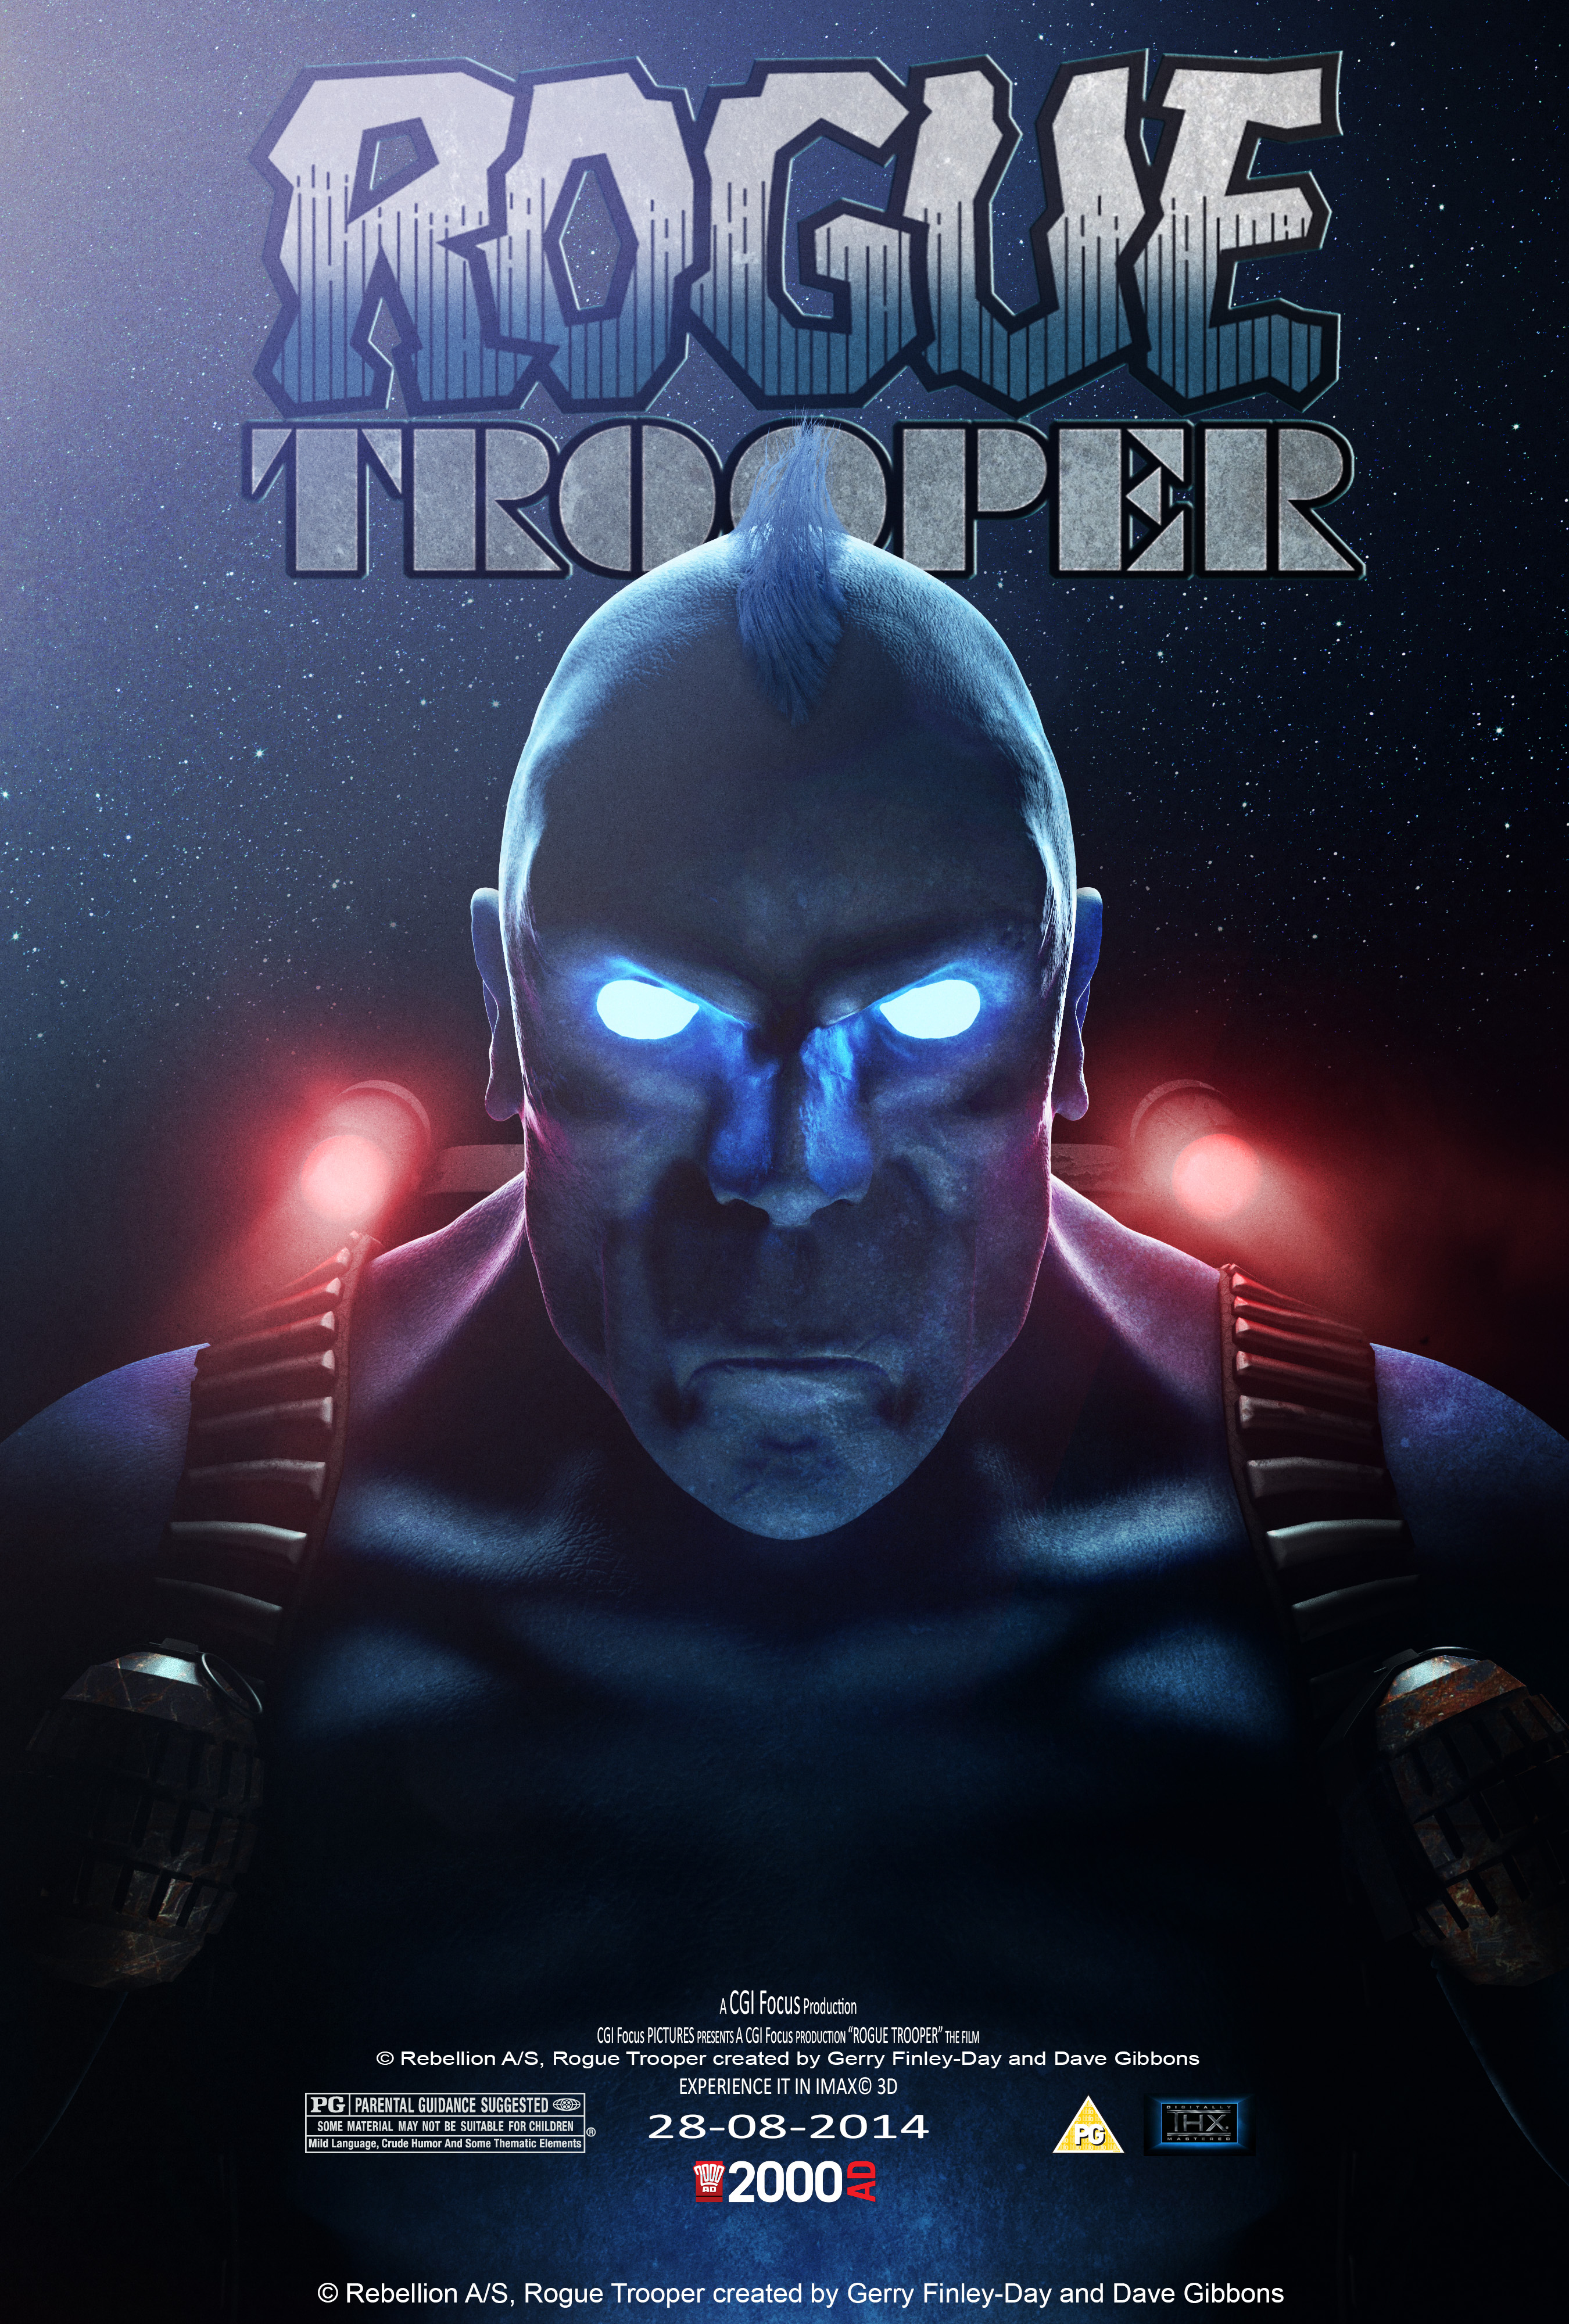 Rogue Trooper Film Poster Competition